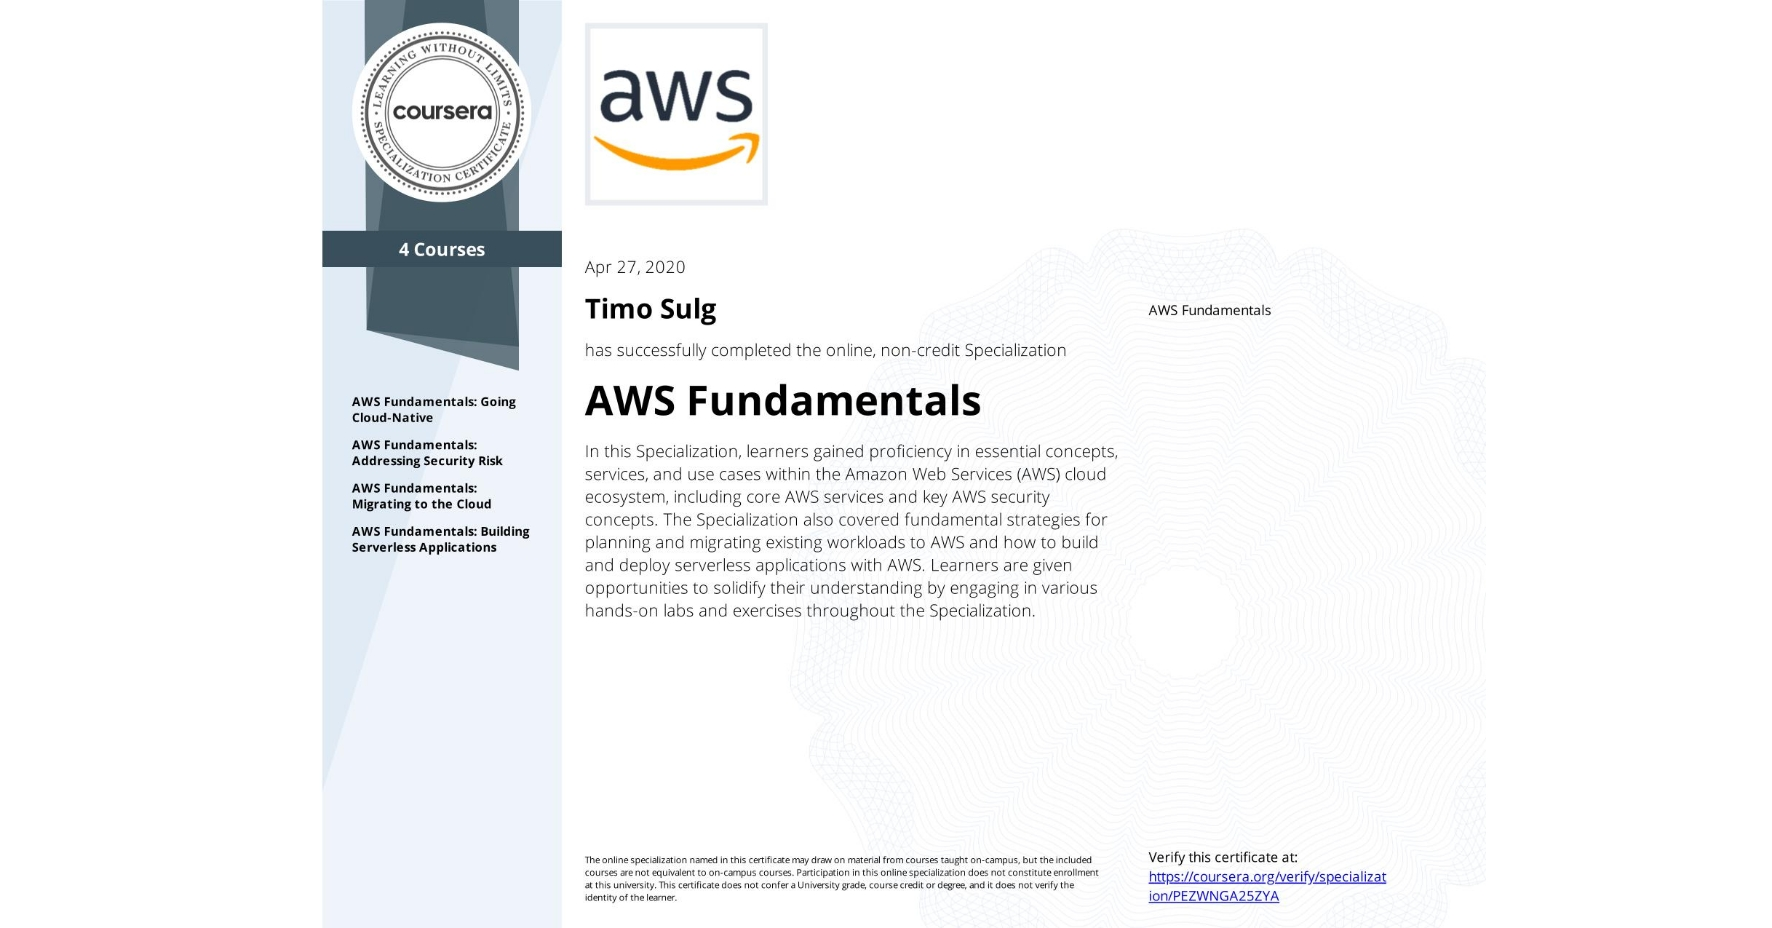 View certificate for Timo Sulg, AWS Fundamentals, offered through Coursera. In this Specialization, learners gained proficiency in essential concepts, services, and use cases within the Amazon Web Services (AWS) cloud ecosystem, including core AWS services and key AWS security concepts. The Specialization also covered fundamental strategies for planning and migrating existing workloads to AWS and how to build and deploy serverless applications with AWS. Learners are given opportunities to solidify their understanding by engaging in various hands-on labs and exercises throughout the Specialization.